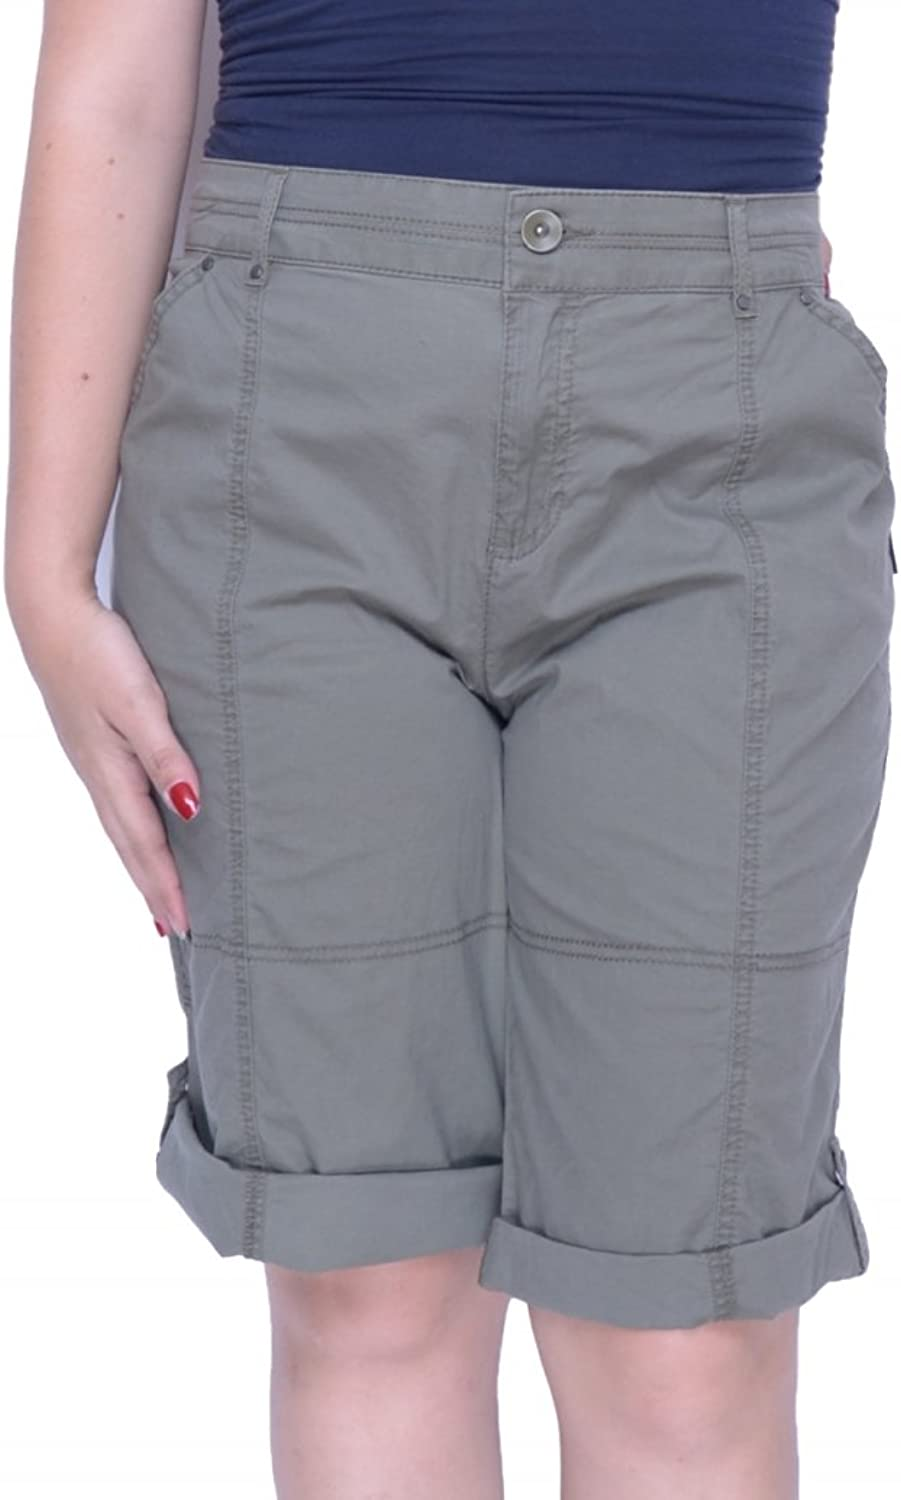 Style & Co. Cuffed Skimmer Shorts Olive Spring Green 16 Cargo